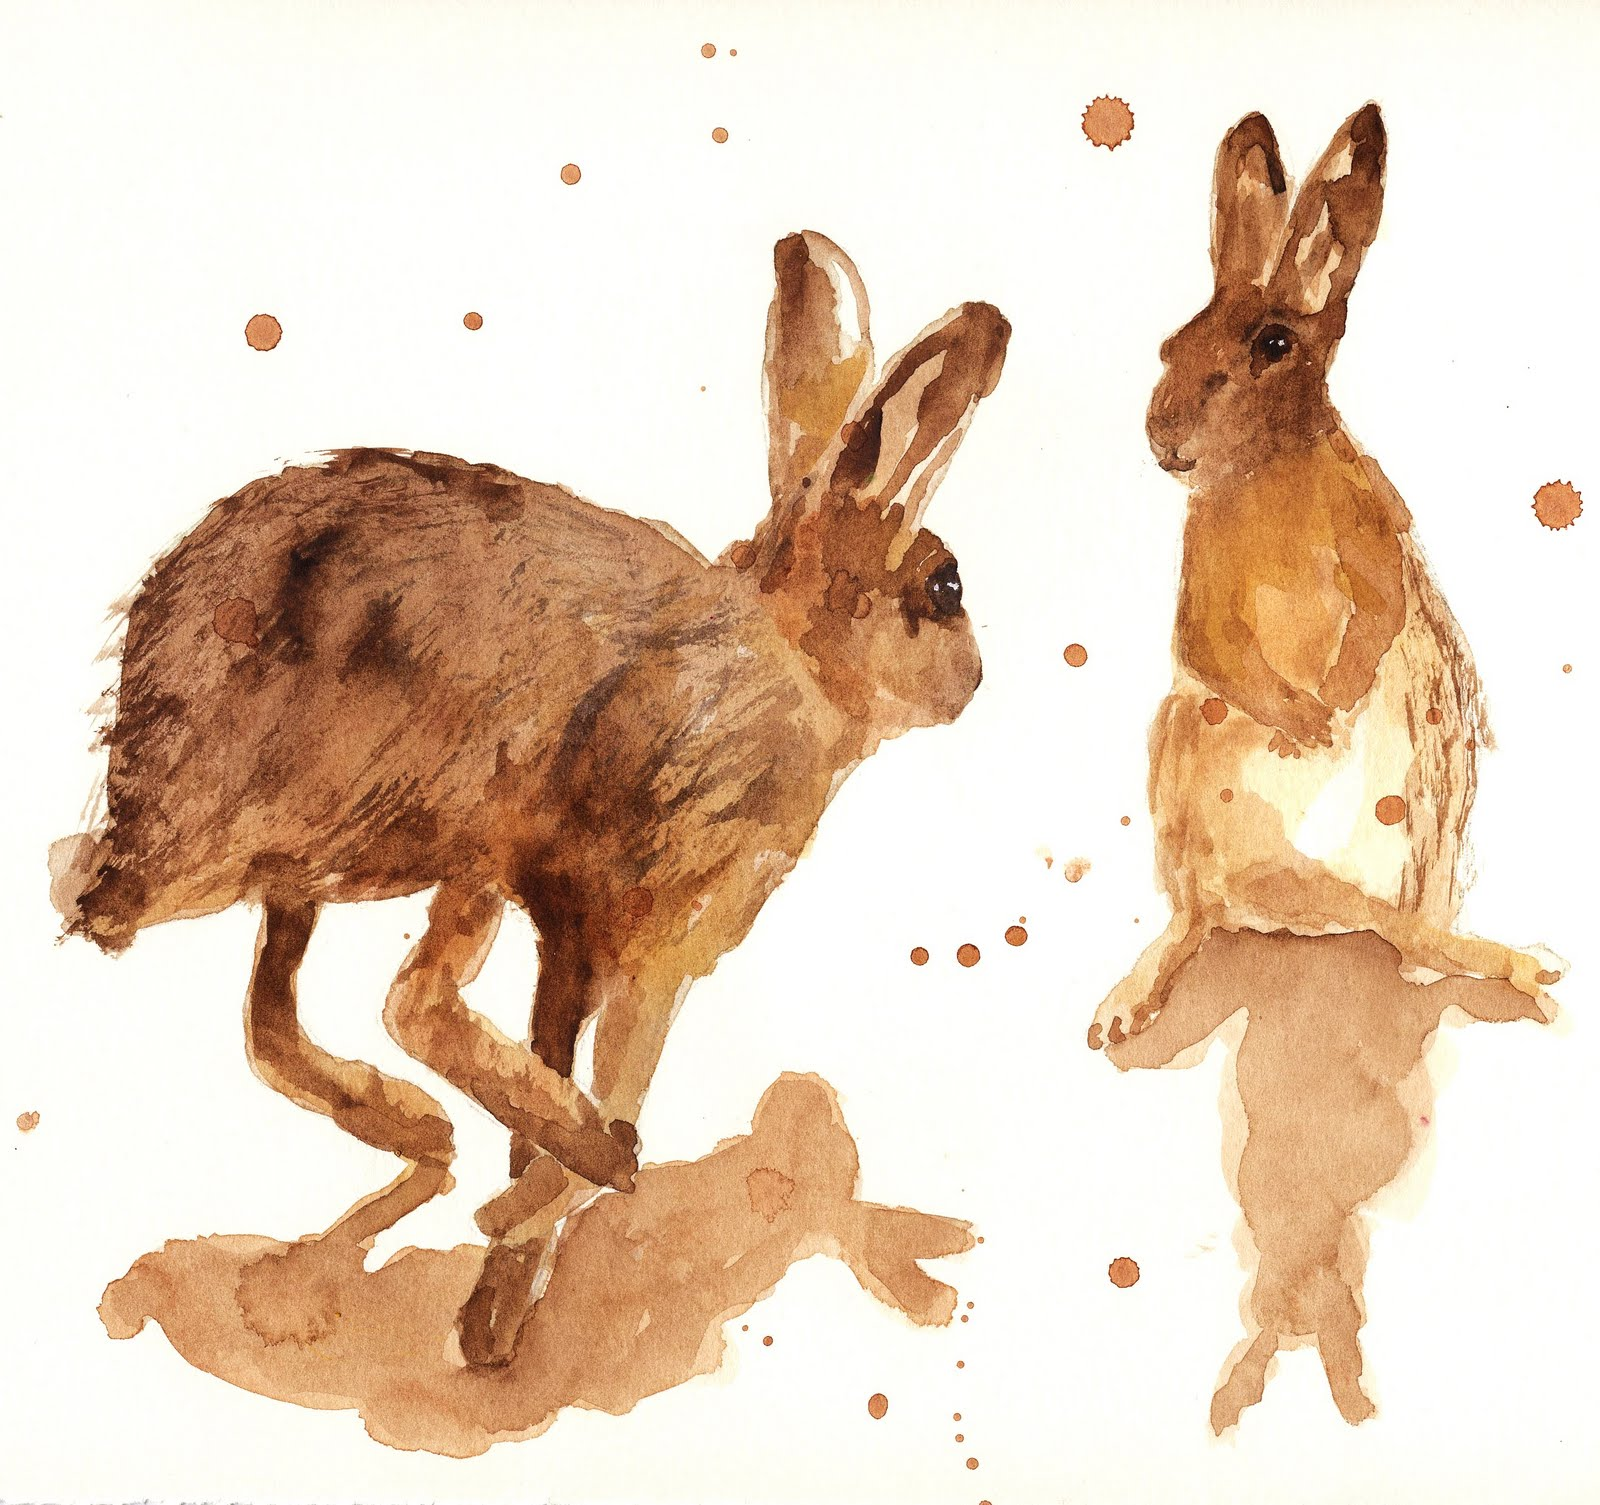 Hare PreservationTrust